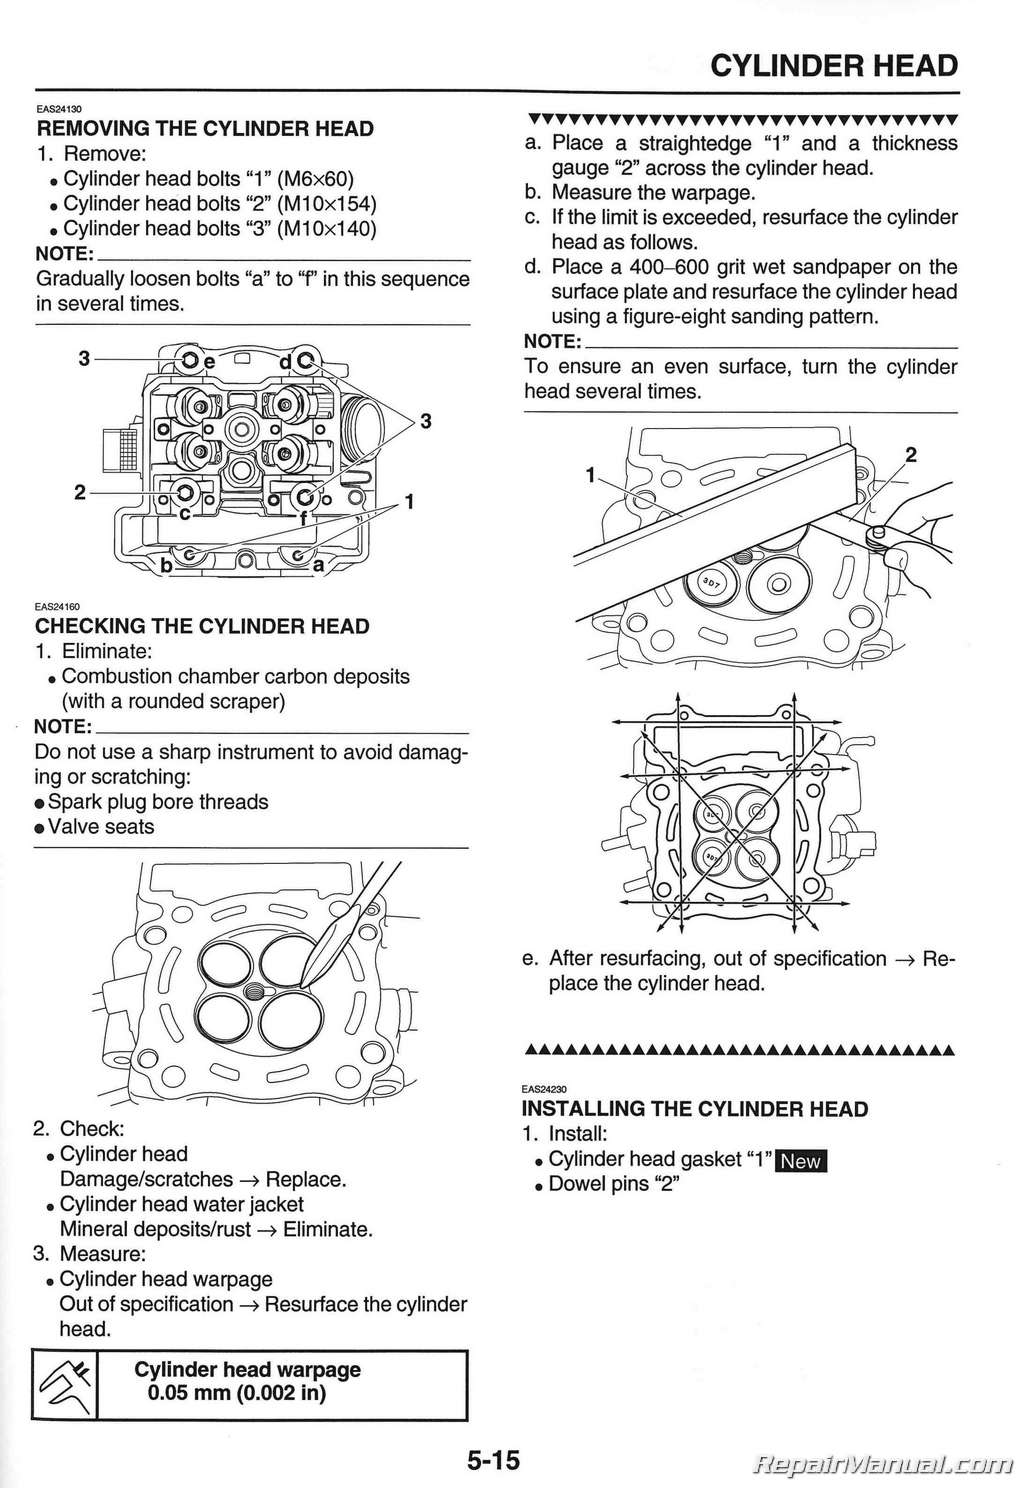 Calaméo 2004 yamaha wr250f(s) service repair manual download.